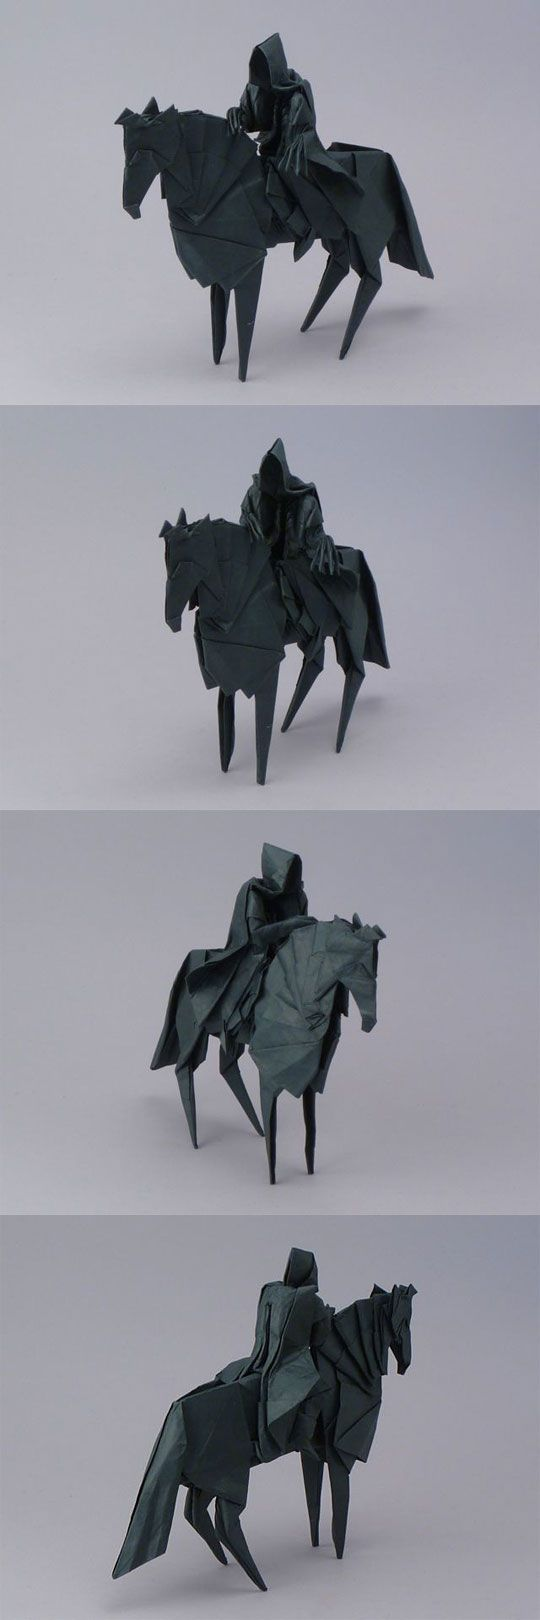 Origami Nazgul Awesome Id Make This For You But Im Pretty Sure Mess It Up Lol